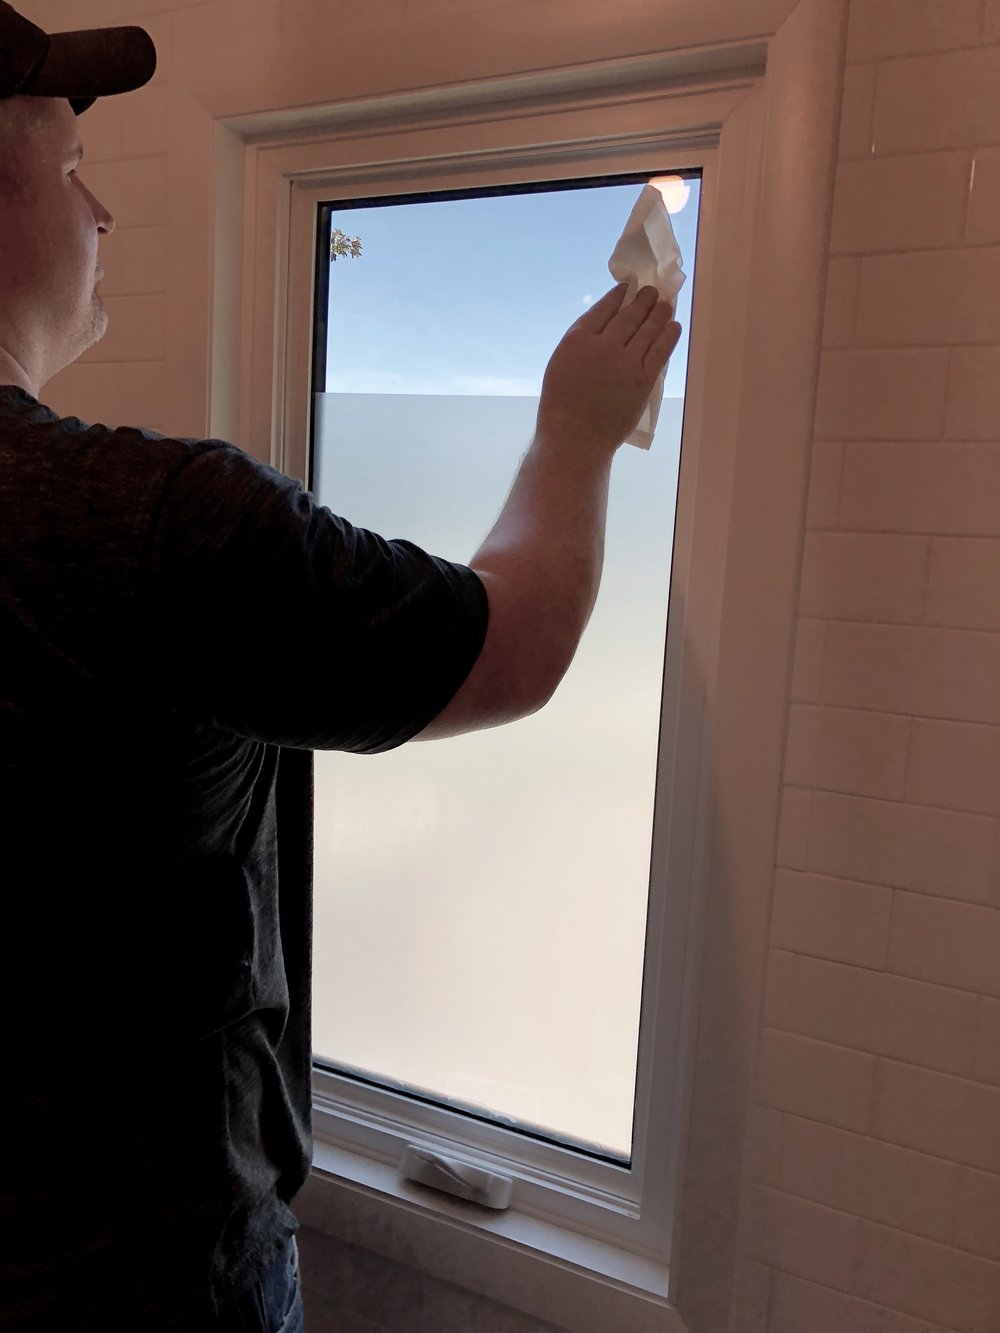 Wipe off window with privacy film